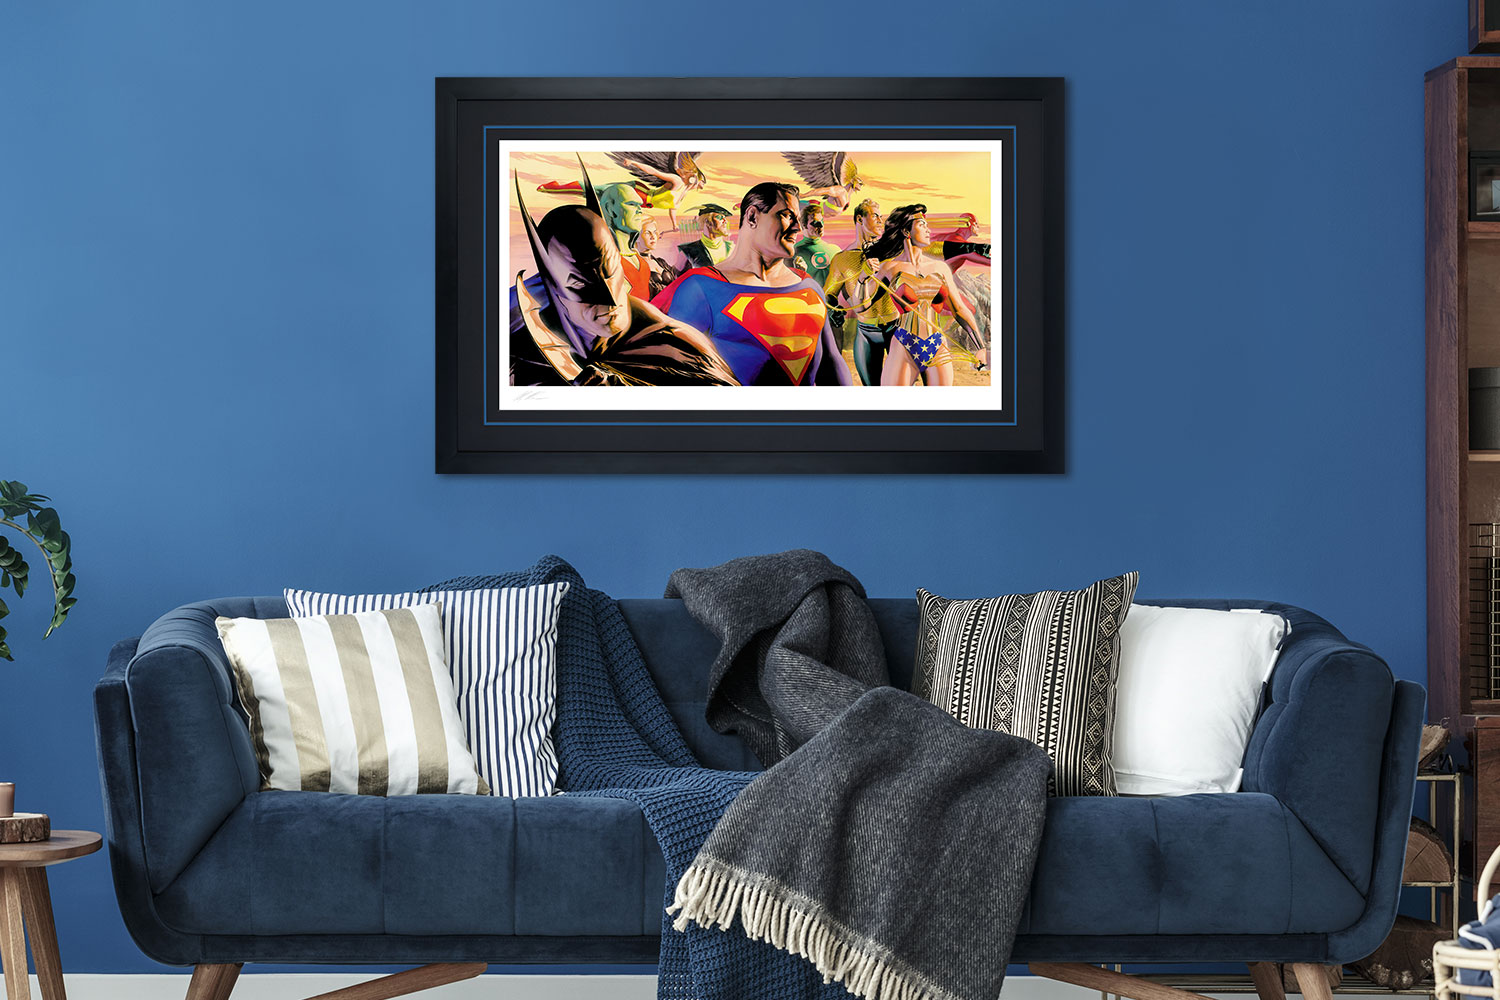 In The Light of Justice Art Print feature image